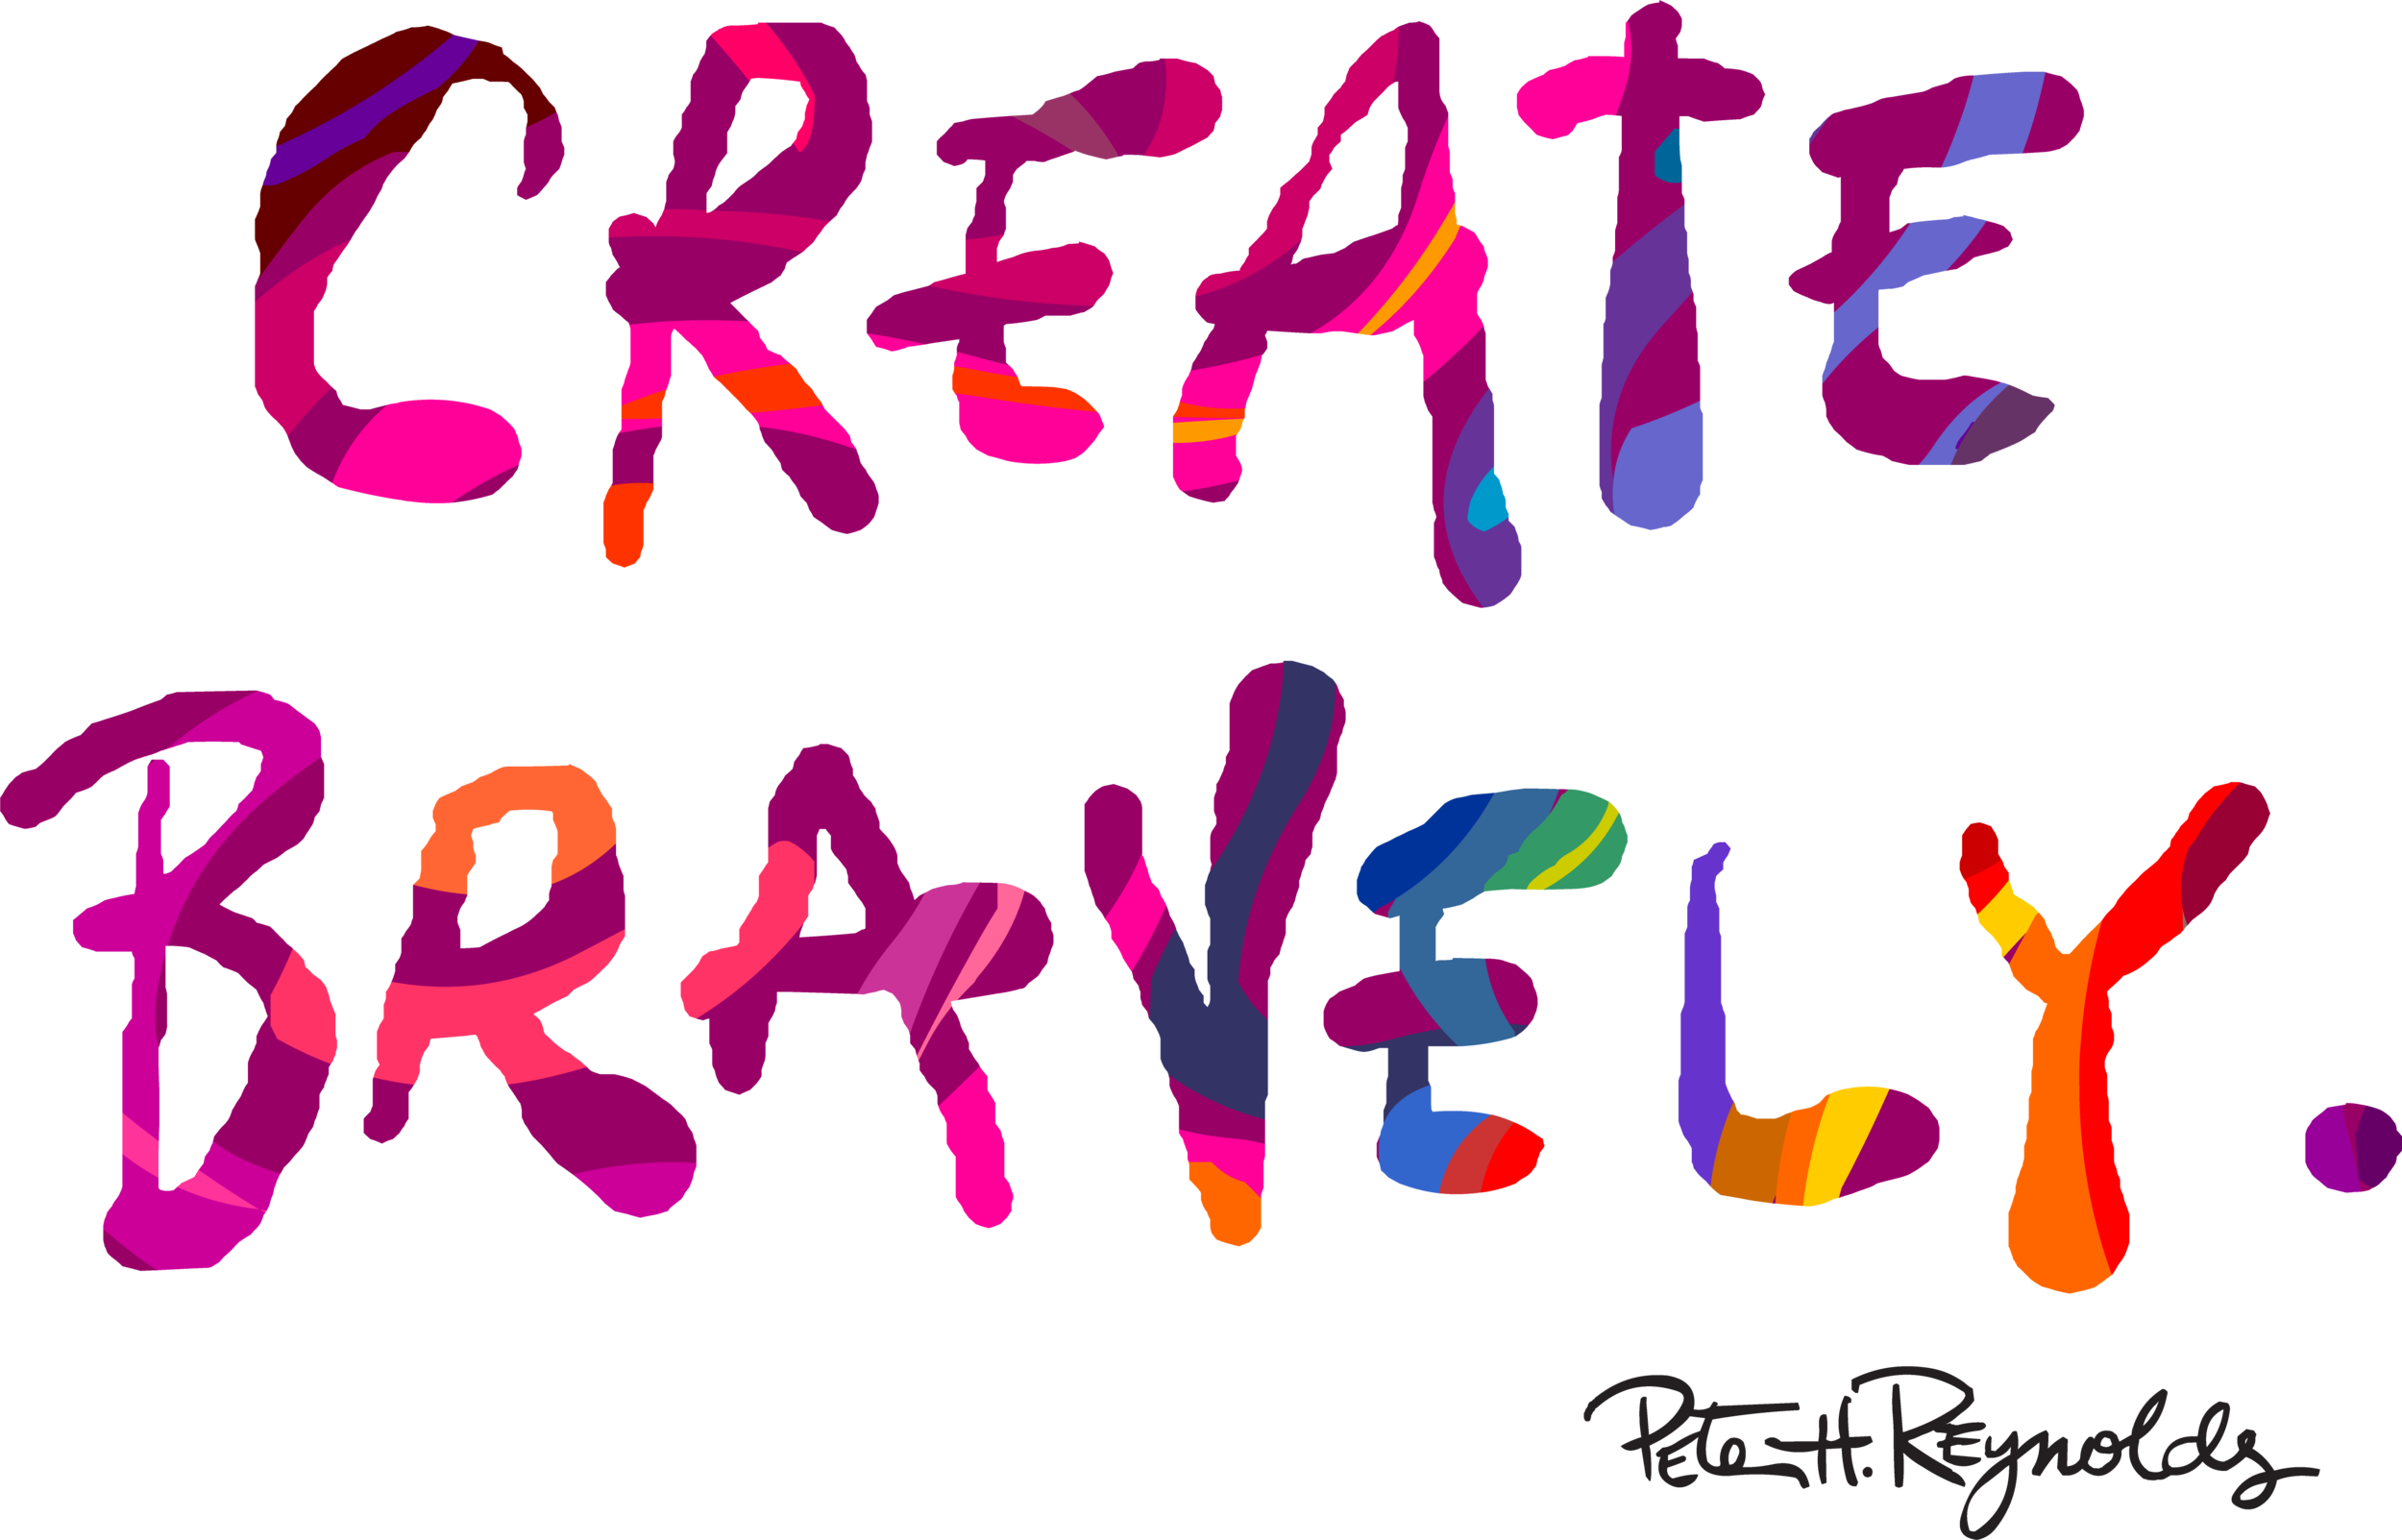 Create_Bravely-color-signature.png